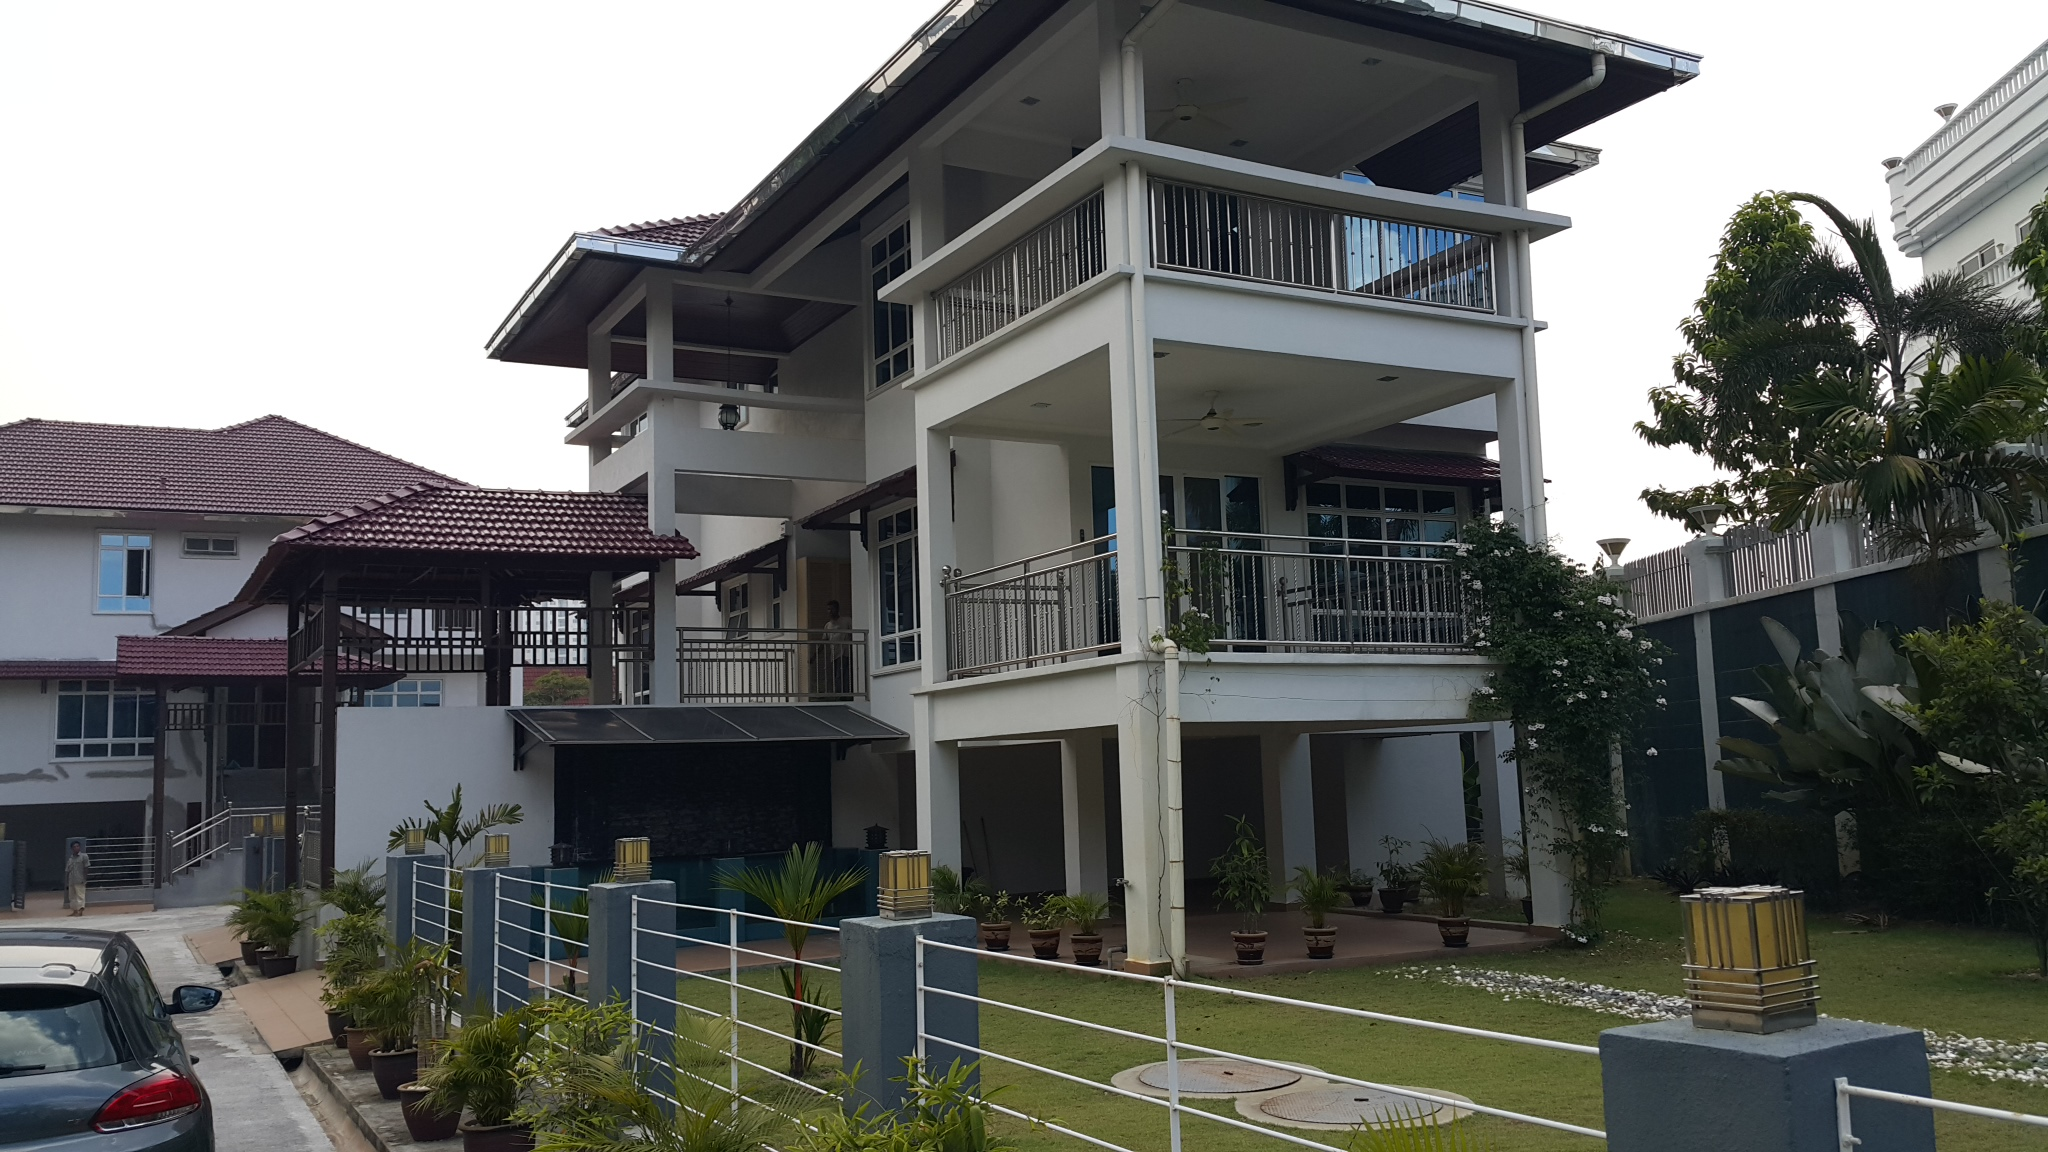 One of the detached houses for sale